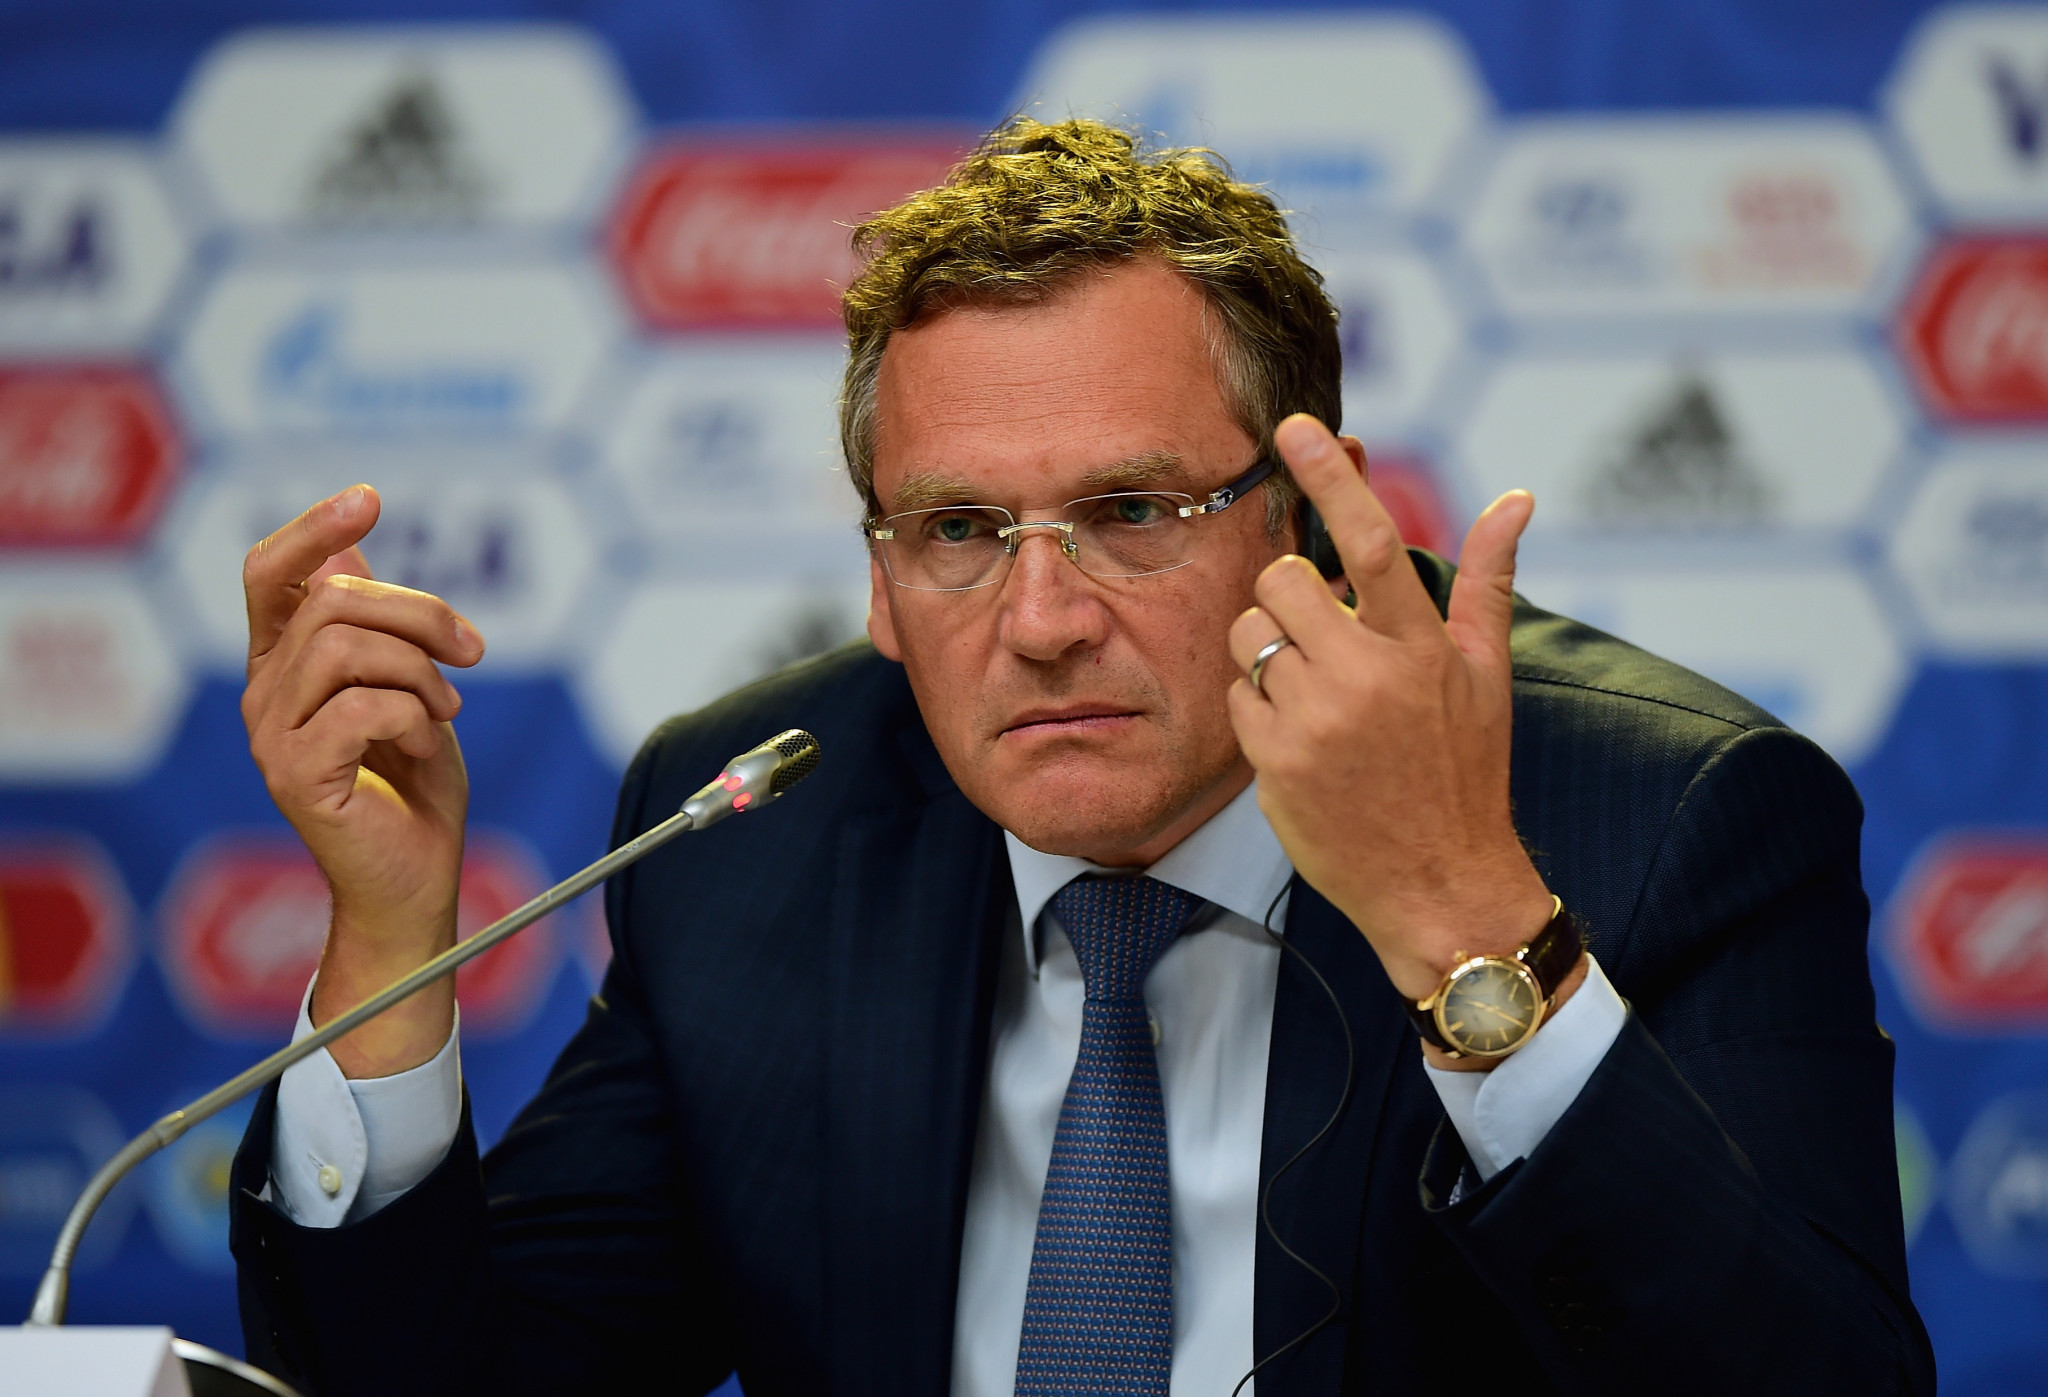 Jérôme Valcke spent $11.7 million in less than three years on private jets the Court of Arbitration for Sport revealed in its judgement released last year when they turned down his appeal ©Getty Images